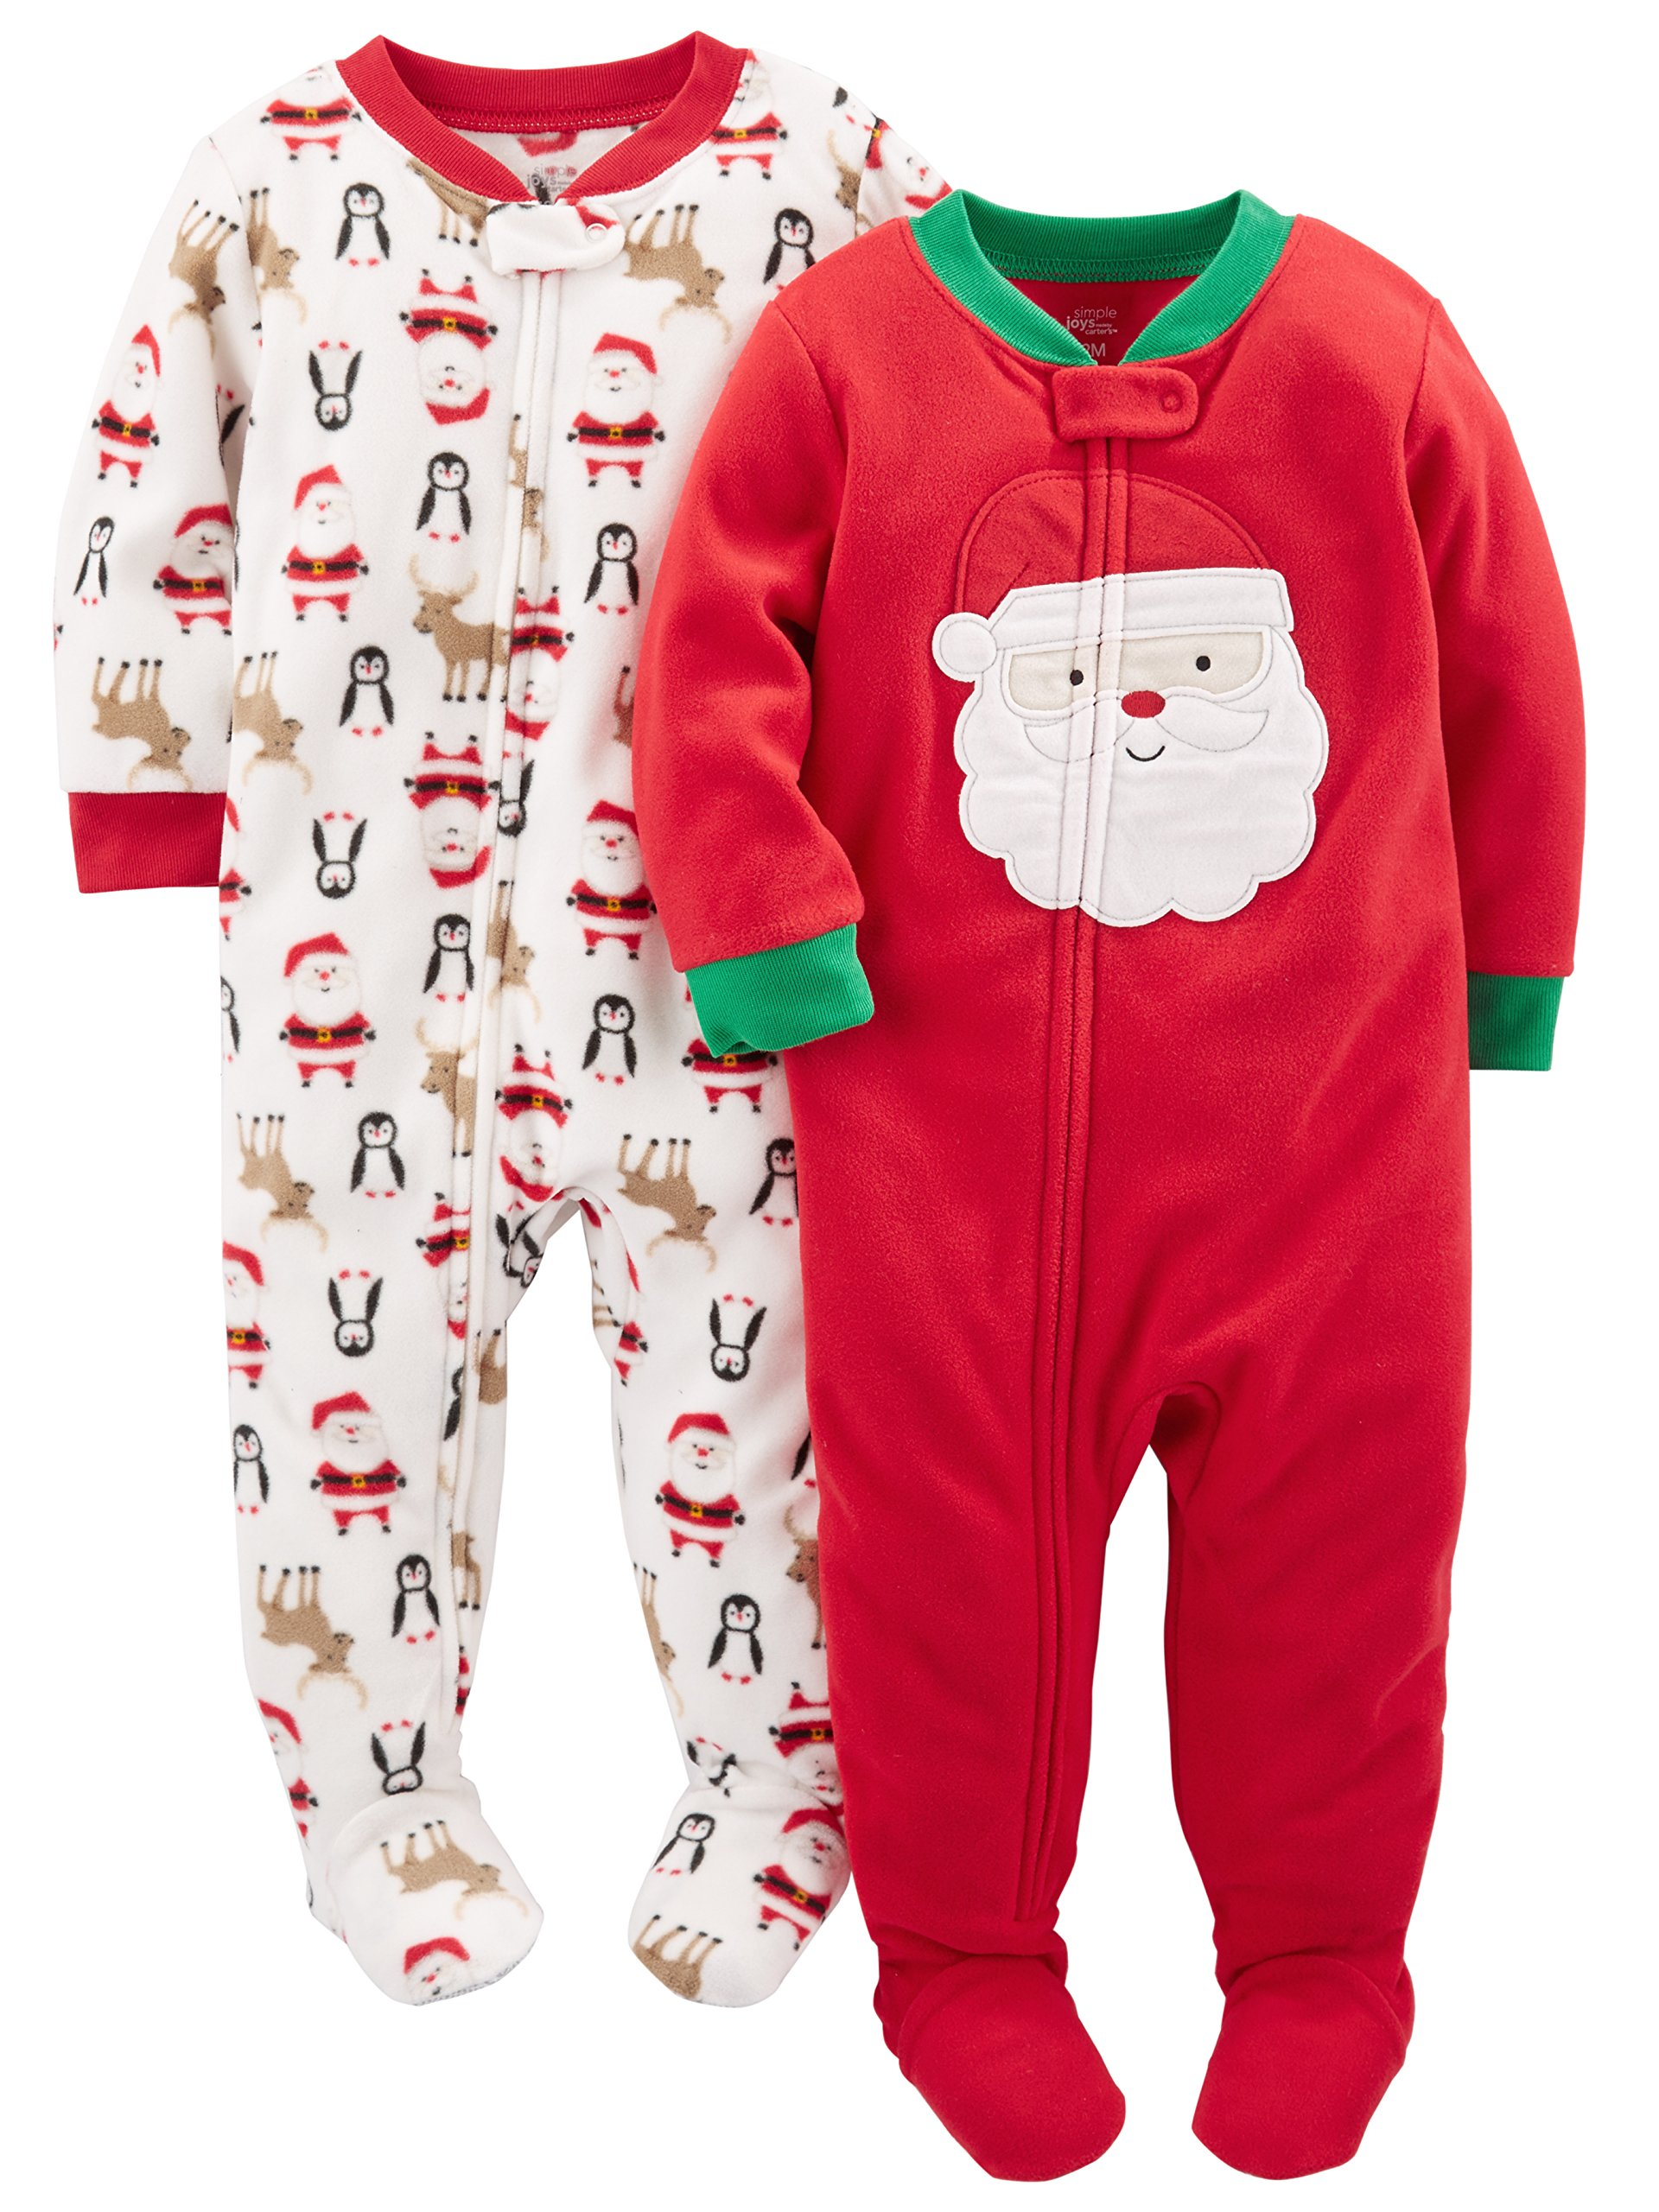 Simple Joys by Carter's Baby 2-Pack Holiday Loose Fit Flame Resistant Fleece Footed Pajamas, Ivory Santa/Red Santa, 18 Months by Simple Joys by Carter's